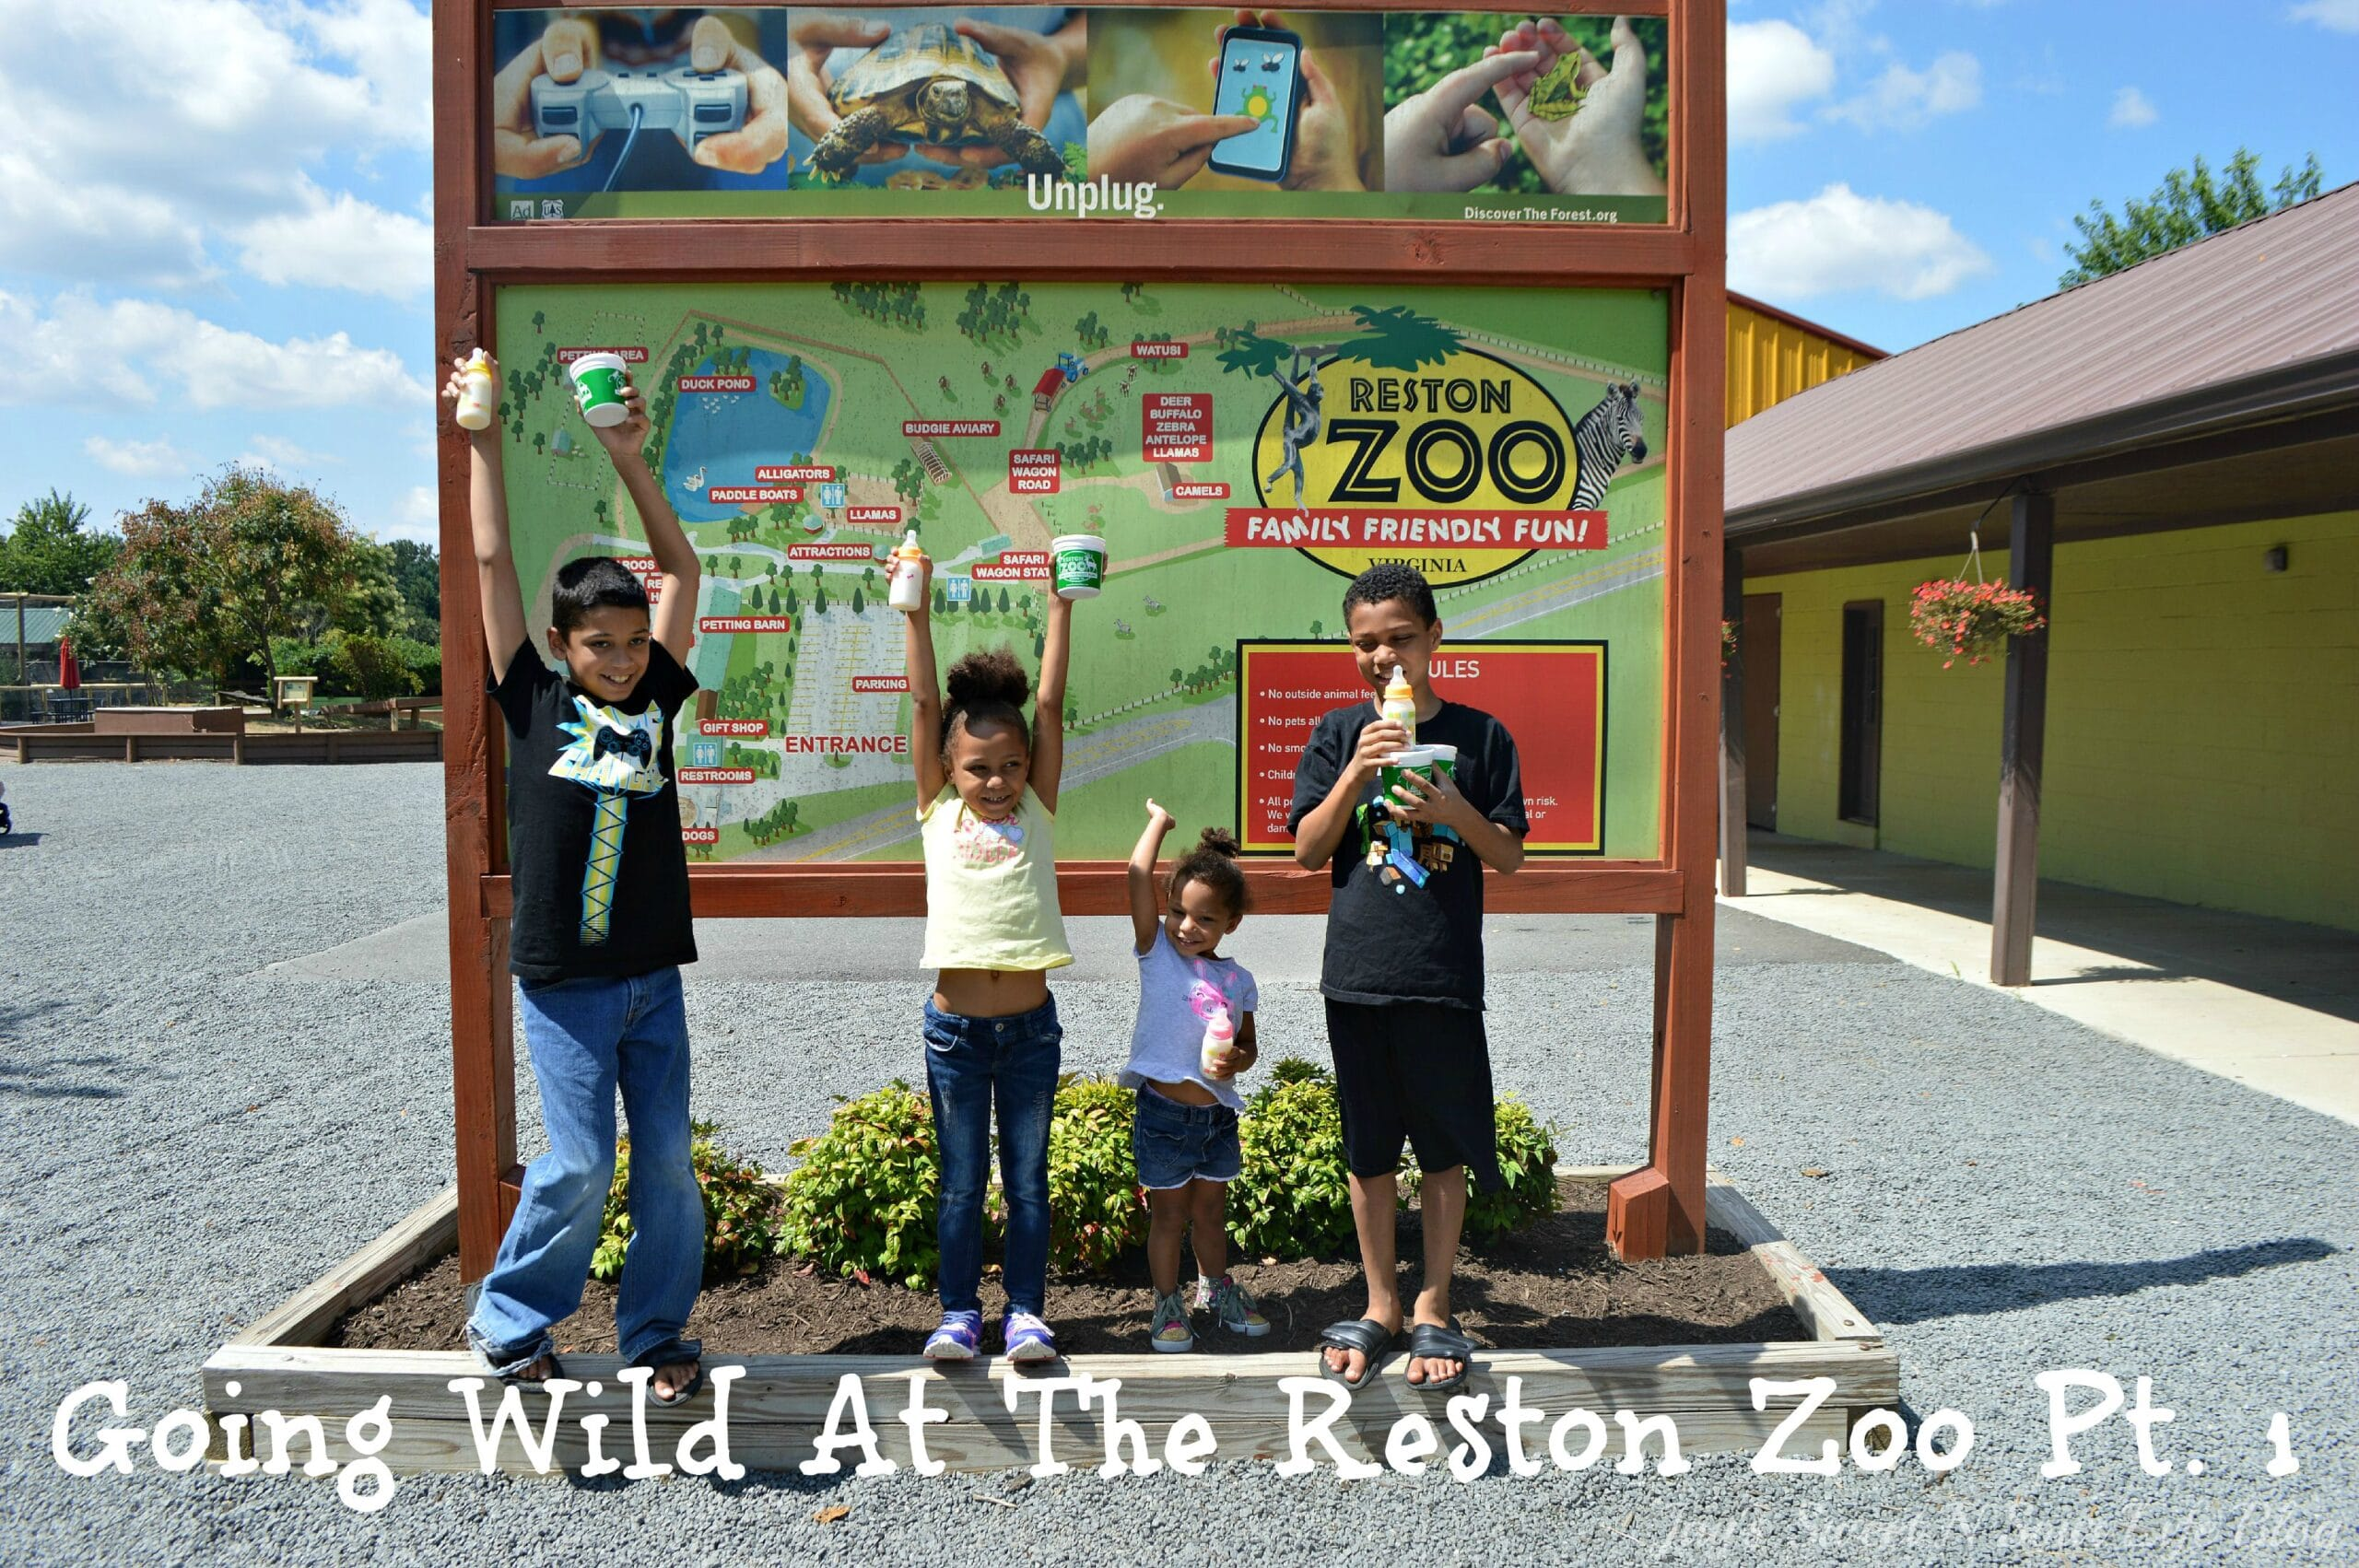 Going Wild At The Reston Zoo Pt. 1